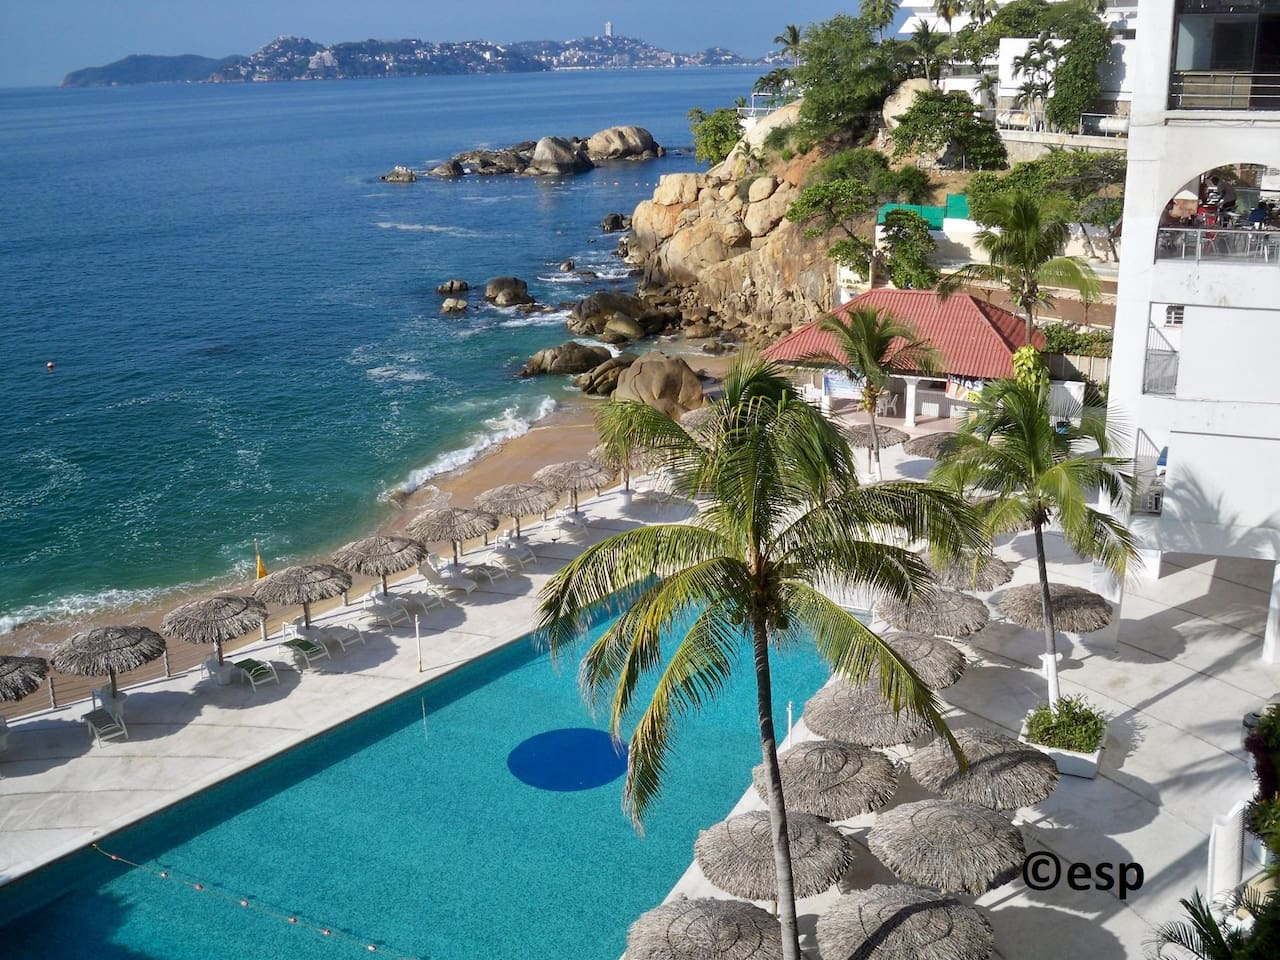 Your place in the Acapulco sun is here! Cabana, pools, palapas, play on the beach, snorkel Acapulco Bay